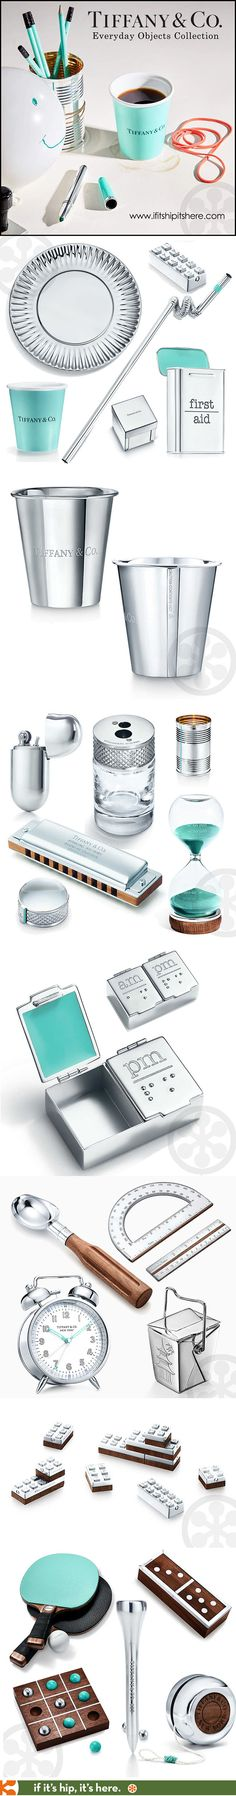 Tiffany & Co has launched the Everyday Objects collection. Ordinary housewares and objects made of sterling silver, enamel and wood. See more at http://www.ifitshipitshere.com/tiffany-co-everyday-objects/